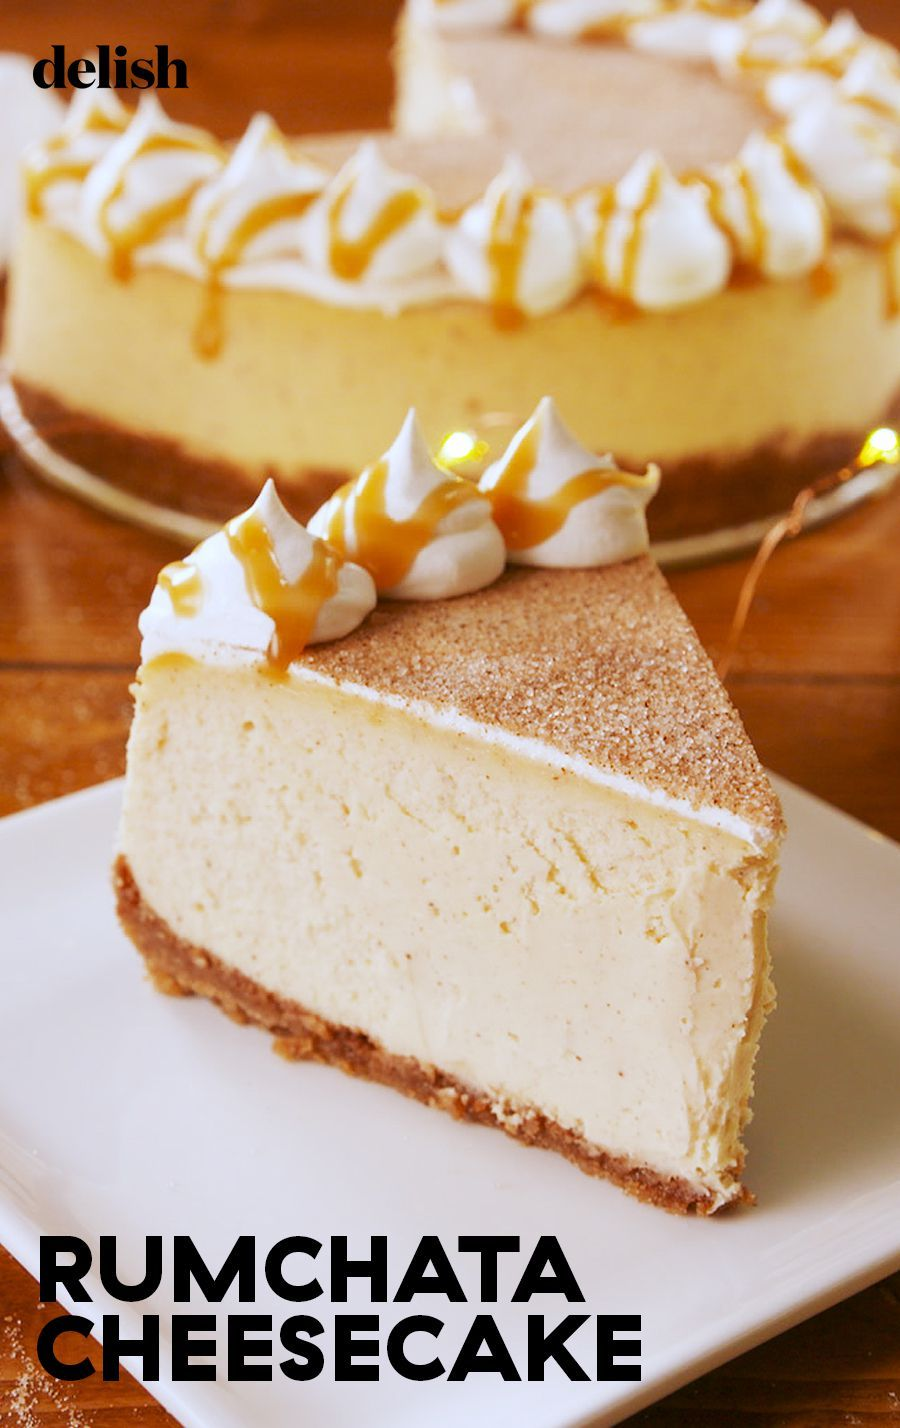 You Wont Find This RumChata Cheesecake At The Cheesecake Factory...YET #cheesecakerecipes